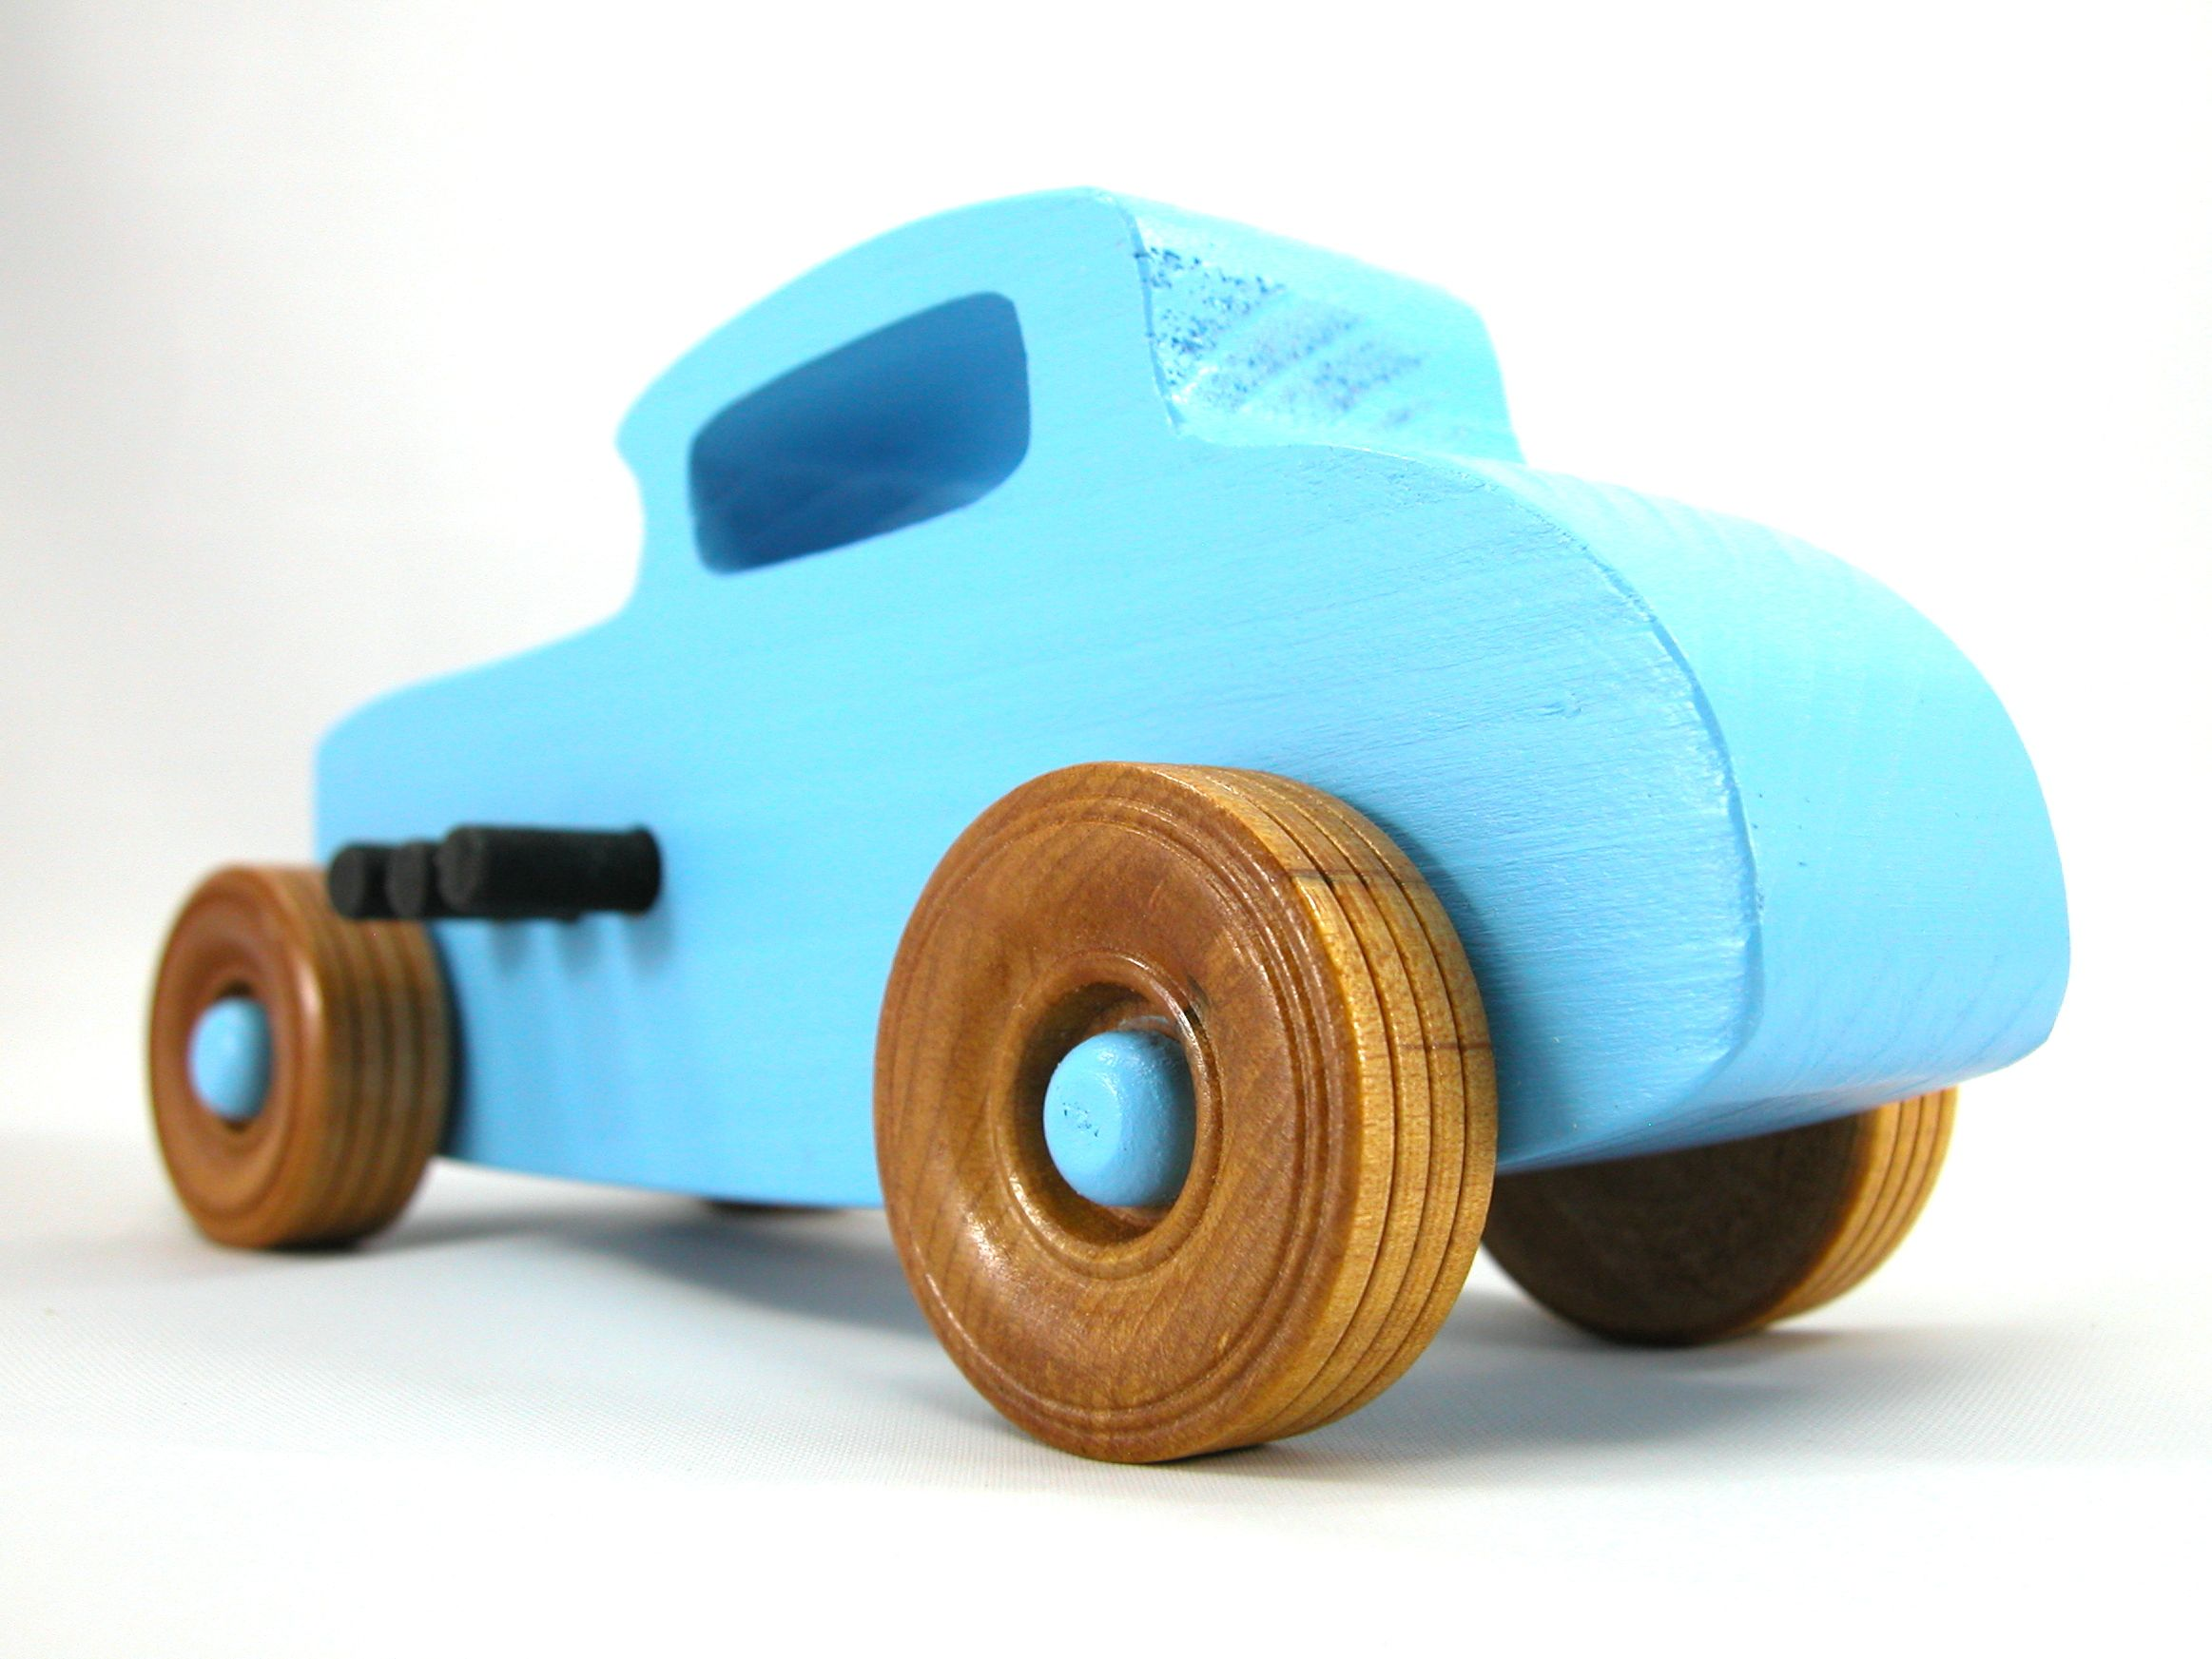 Wooden Toy Car 32 Ford Deuce Coupe Little Deuce Coupe Hot Rod Race Car Street Rod Dragster Speedster Wood Toy Boys Girls